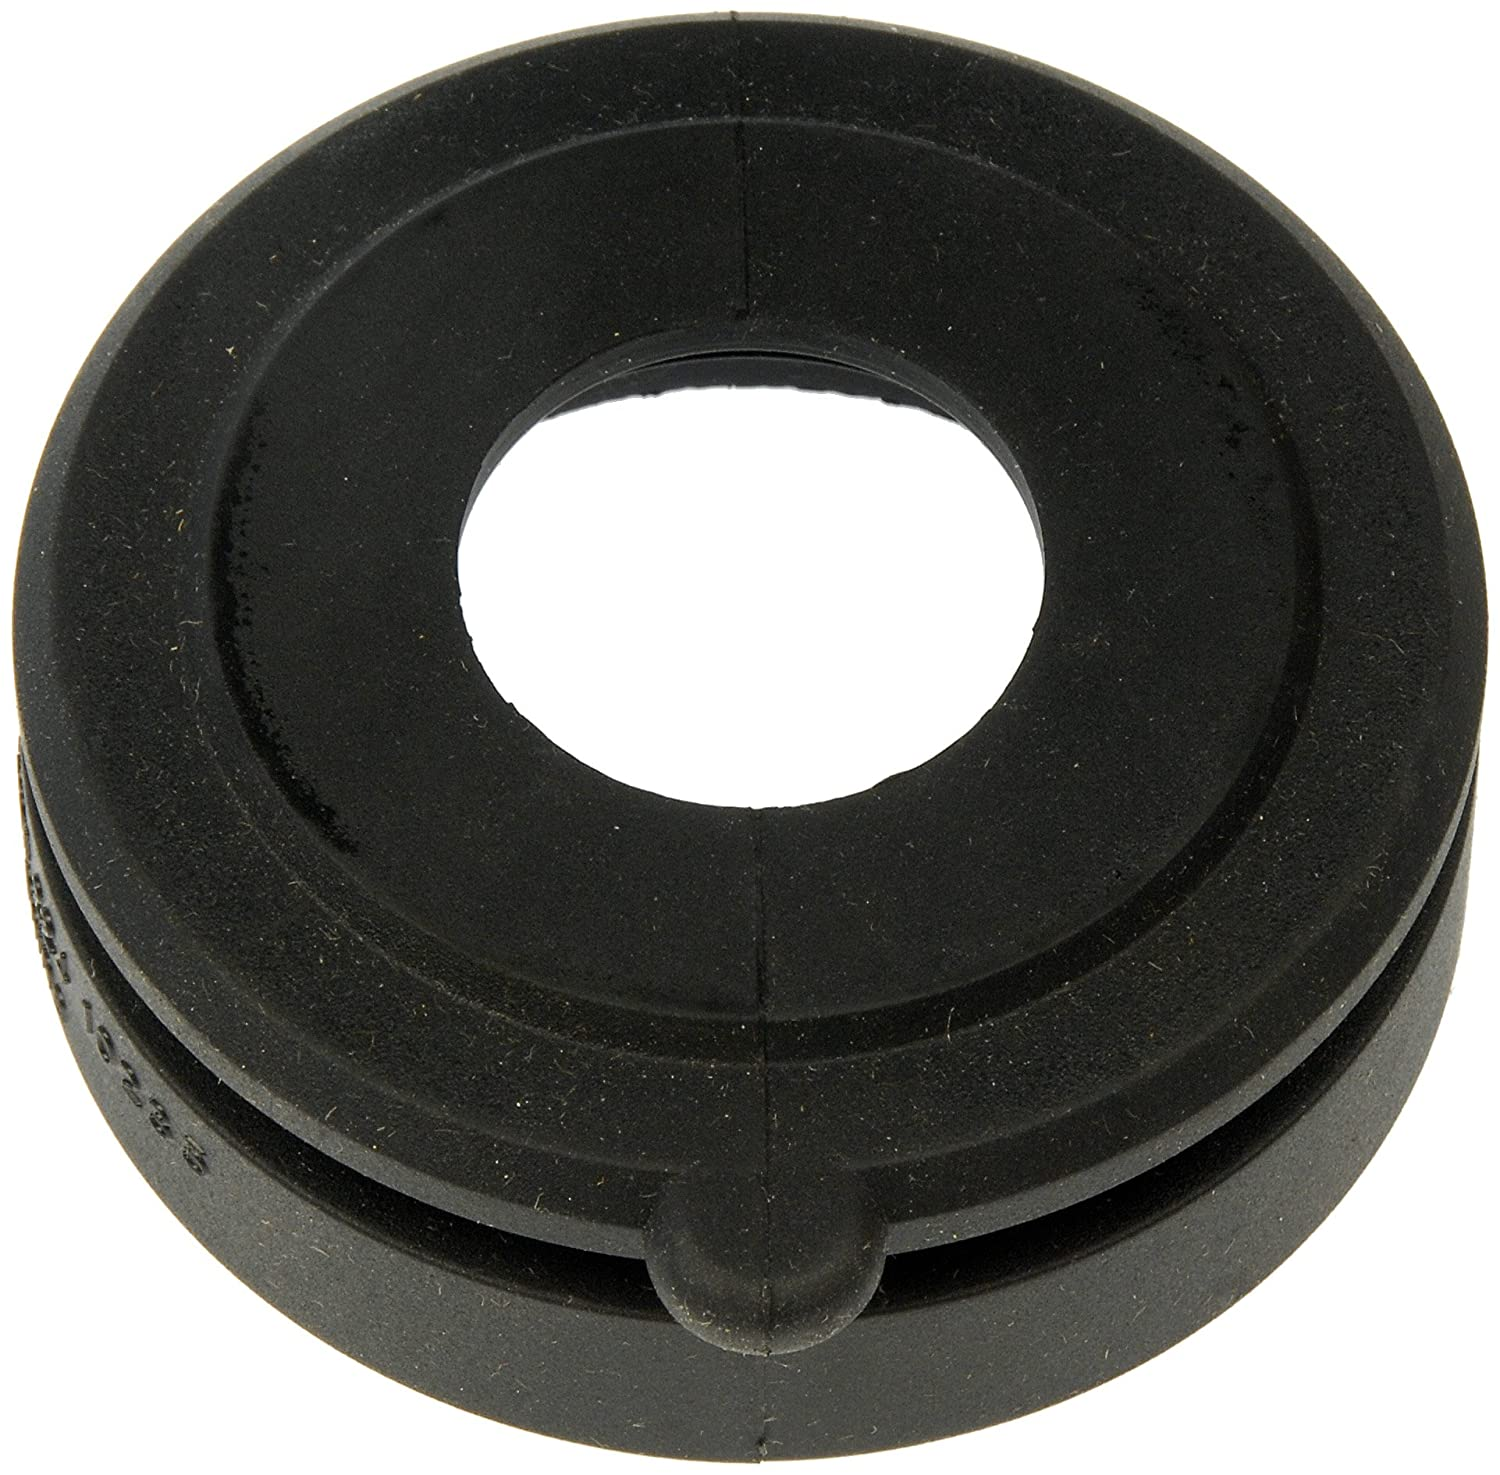 Dorman 577-501 Filler Neck Grommet